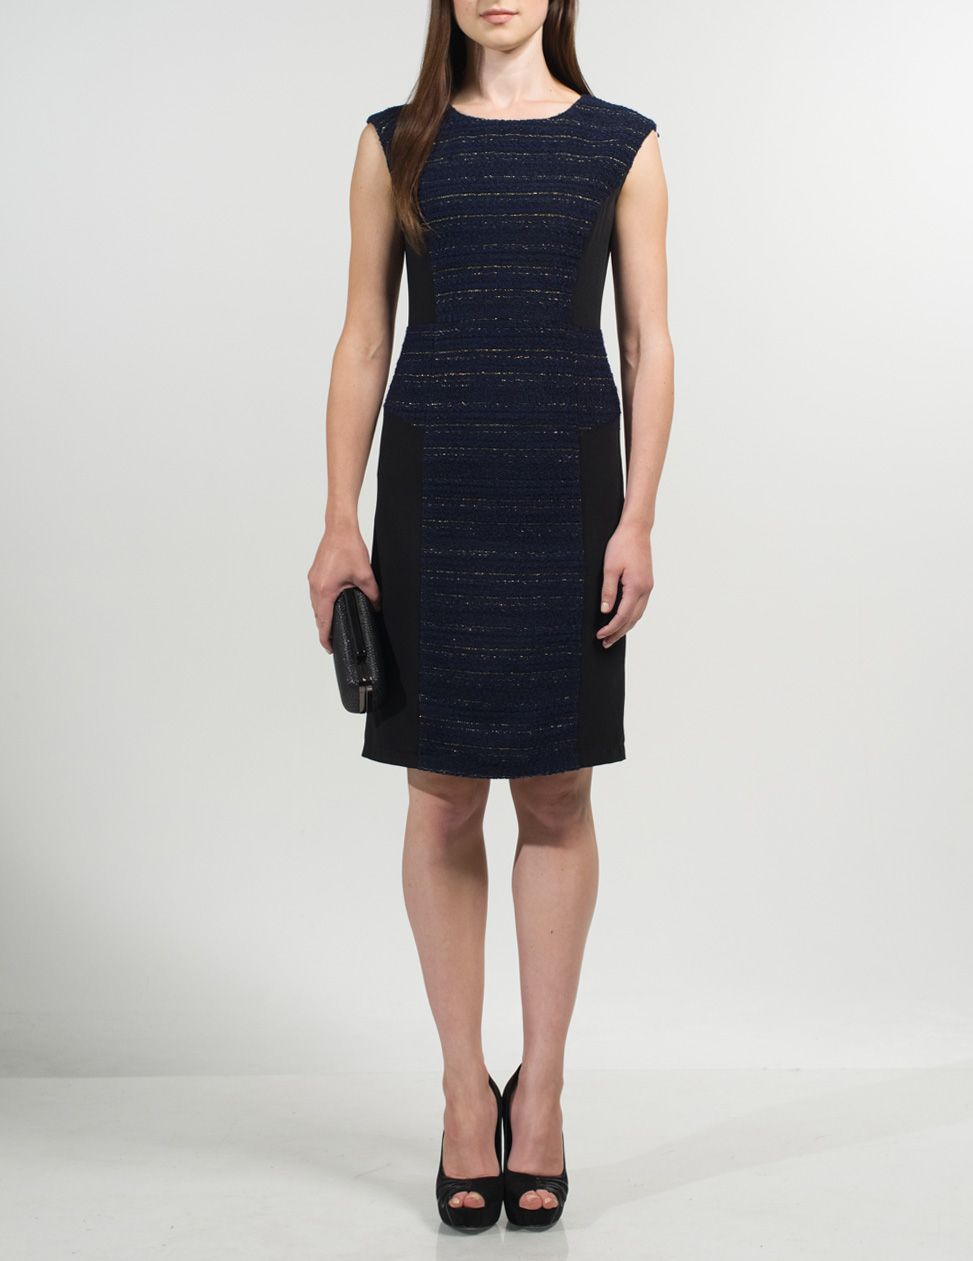 Dolya black and navy short dress